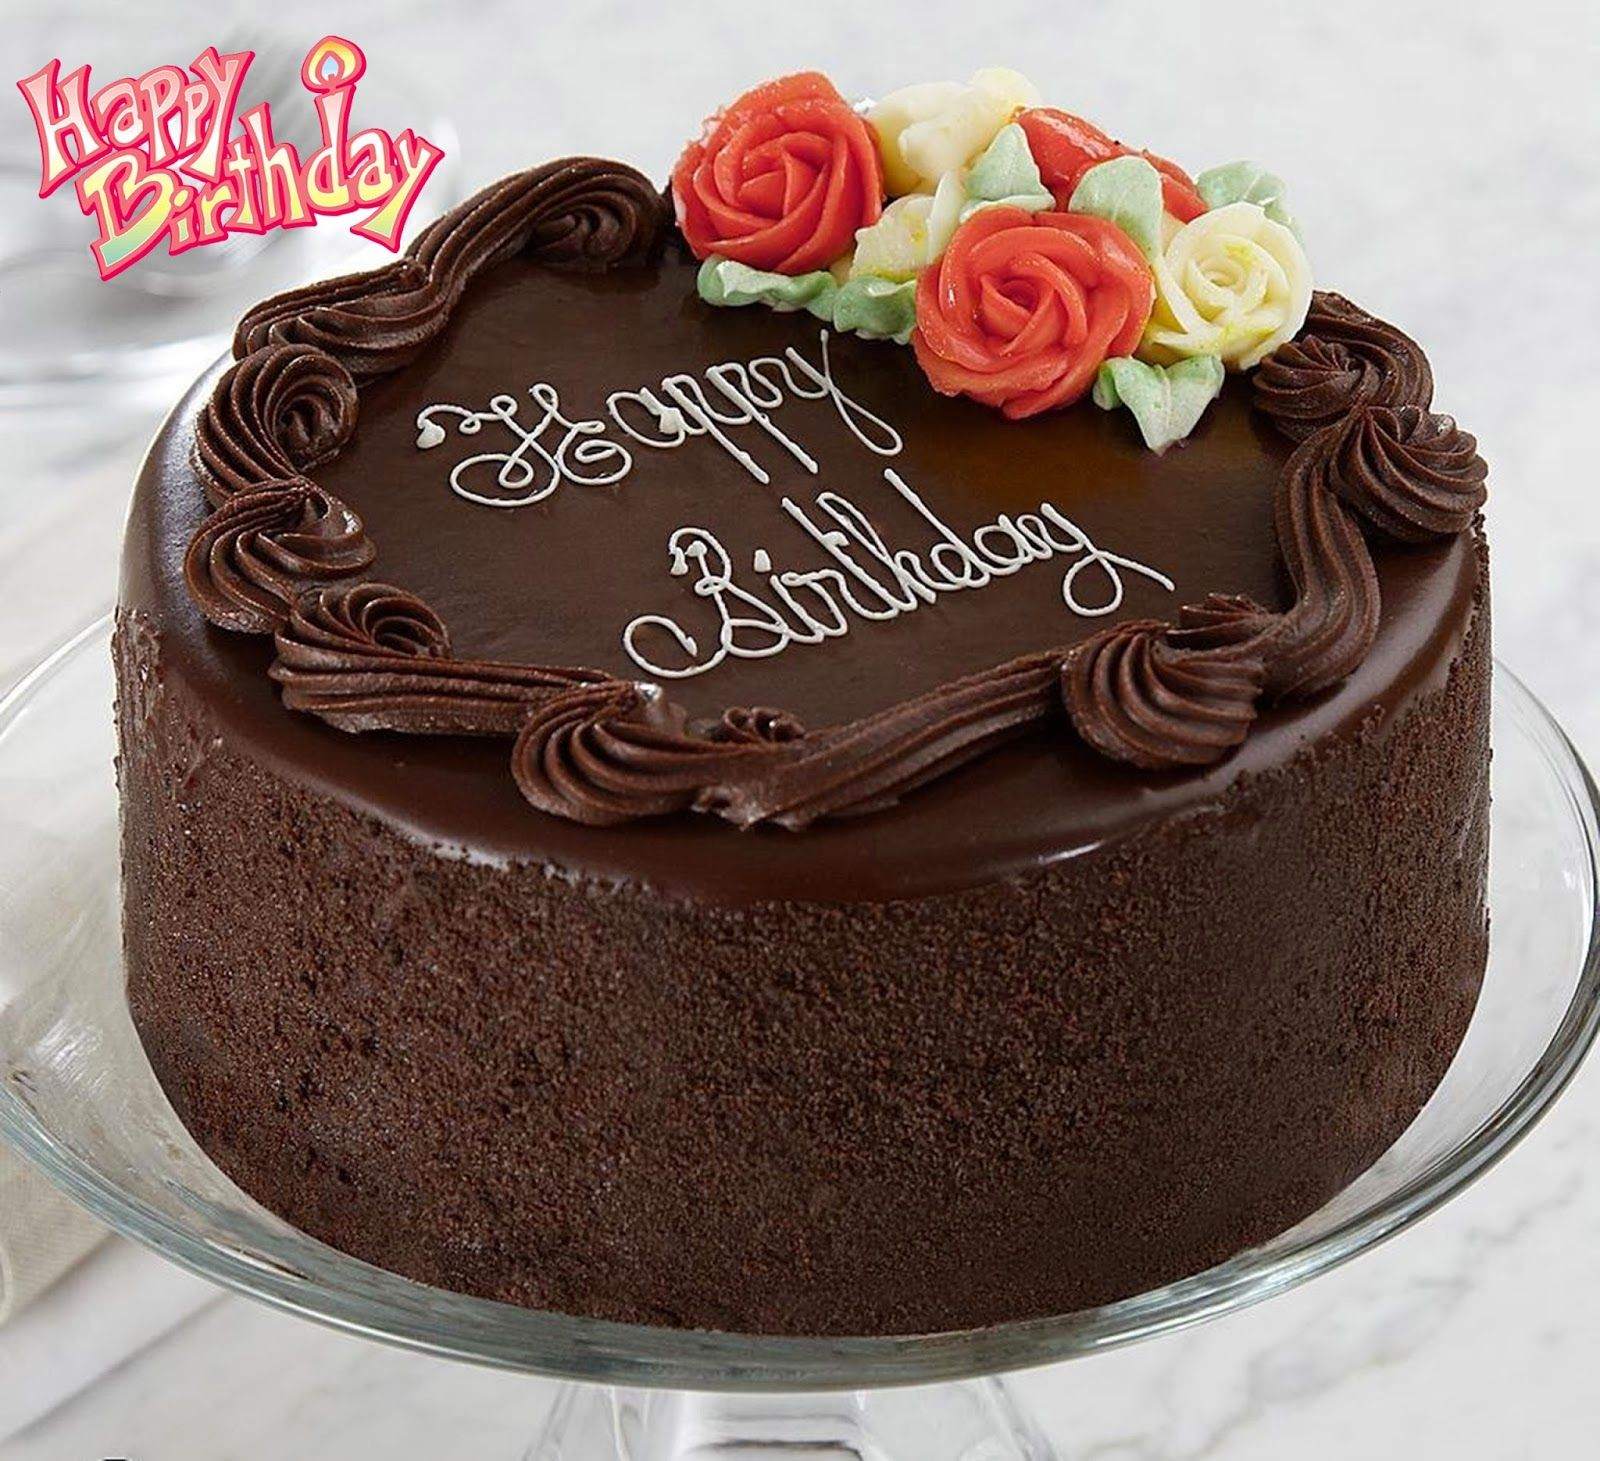 happybirthdaychocolatecakeswithquotes Happy birthday